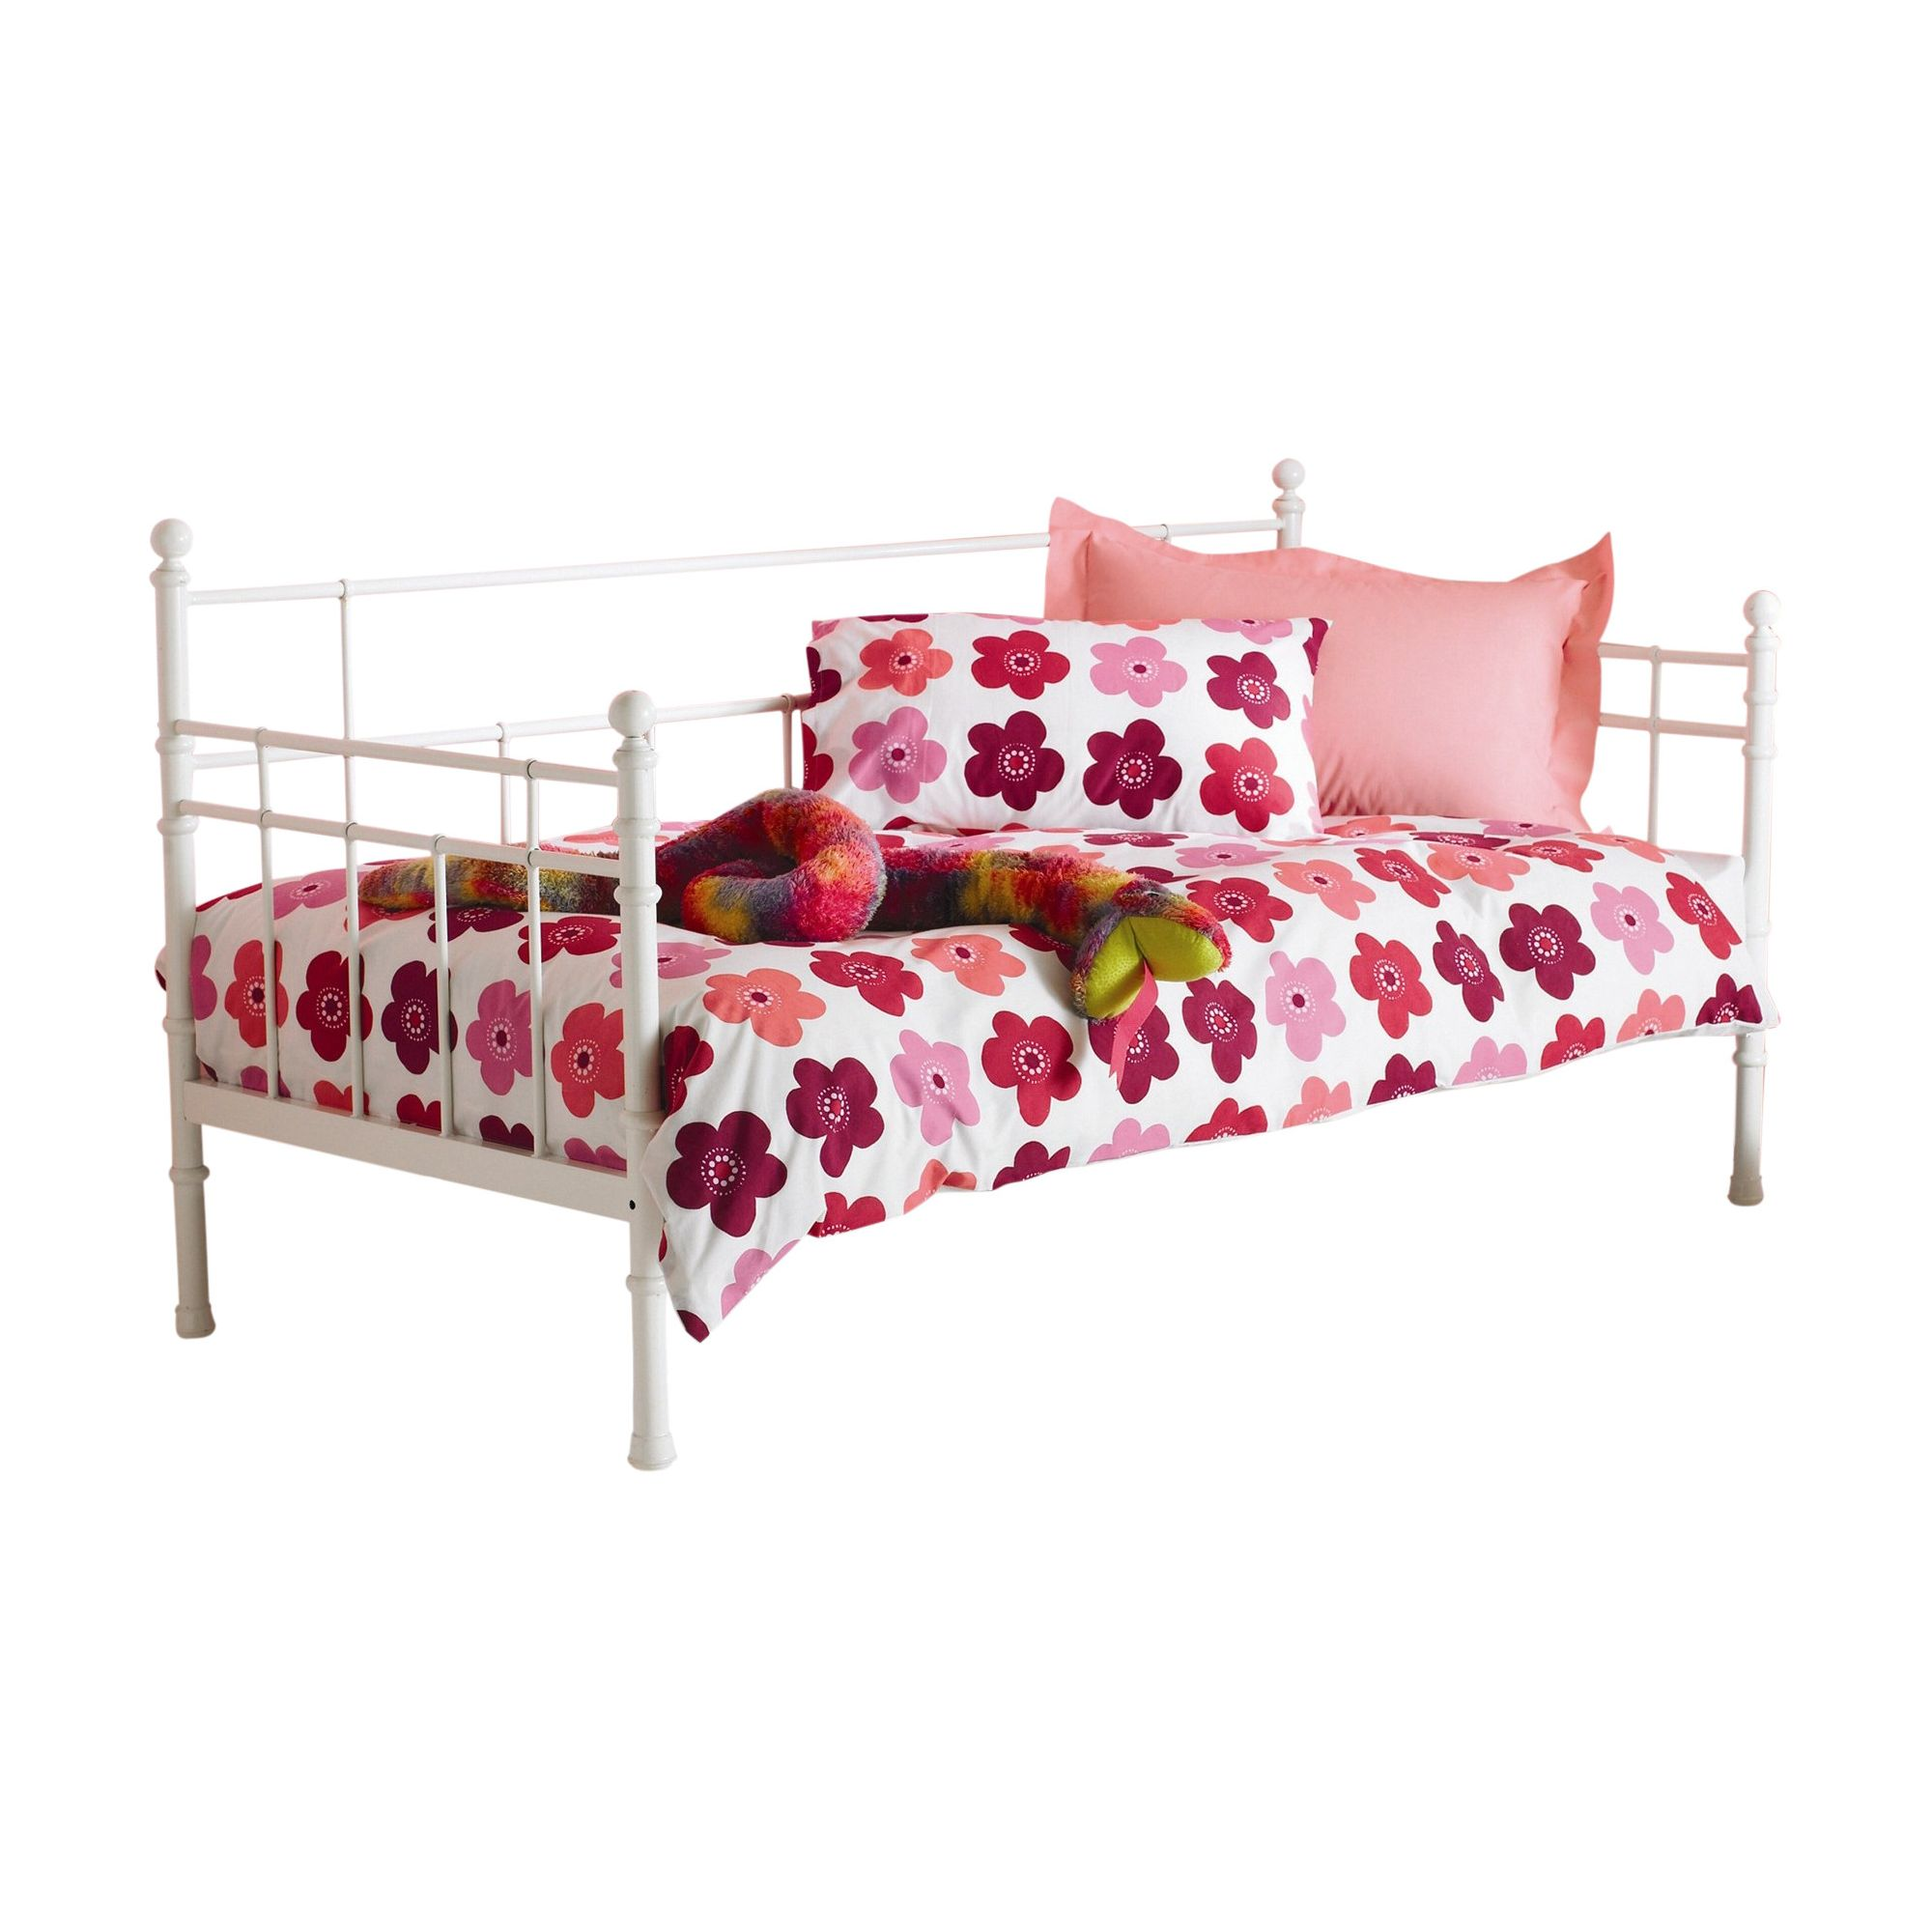 Hyder Ariaana Day Bed Frame - Included